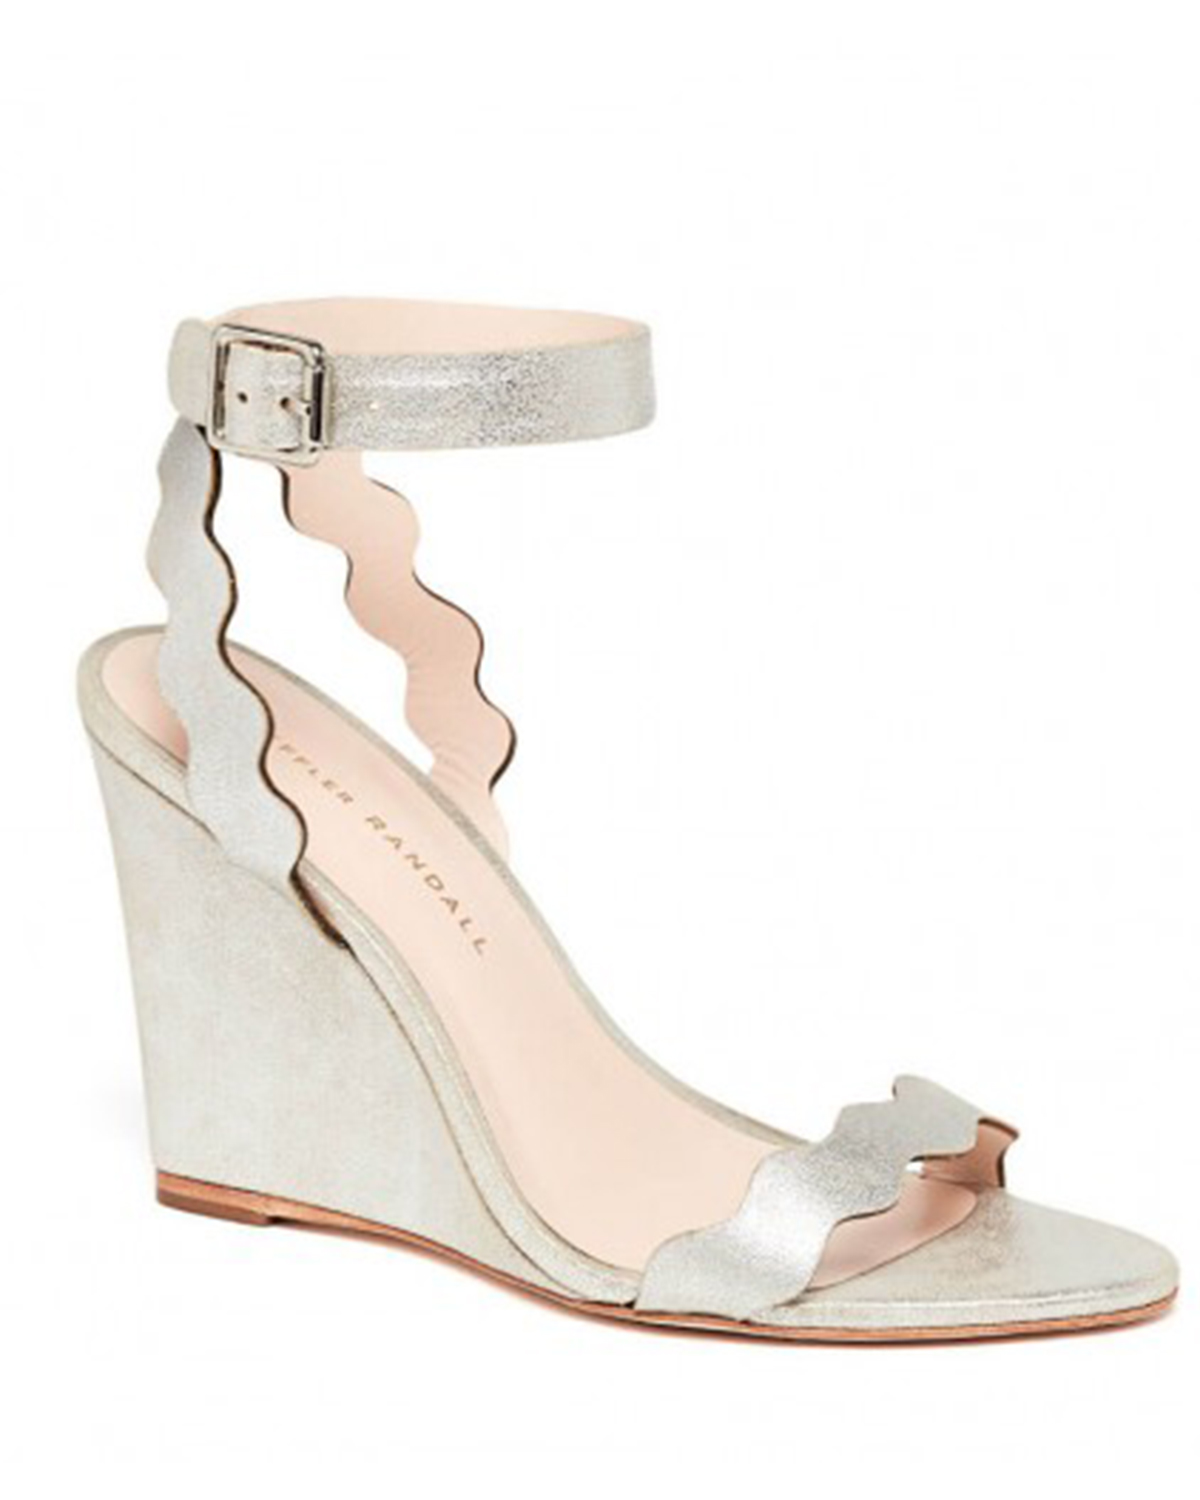 wedding wedges with squiggle-shaped strapes